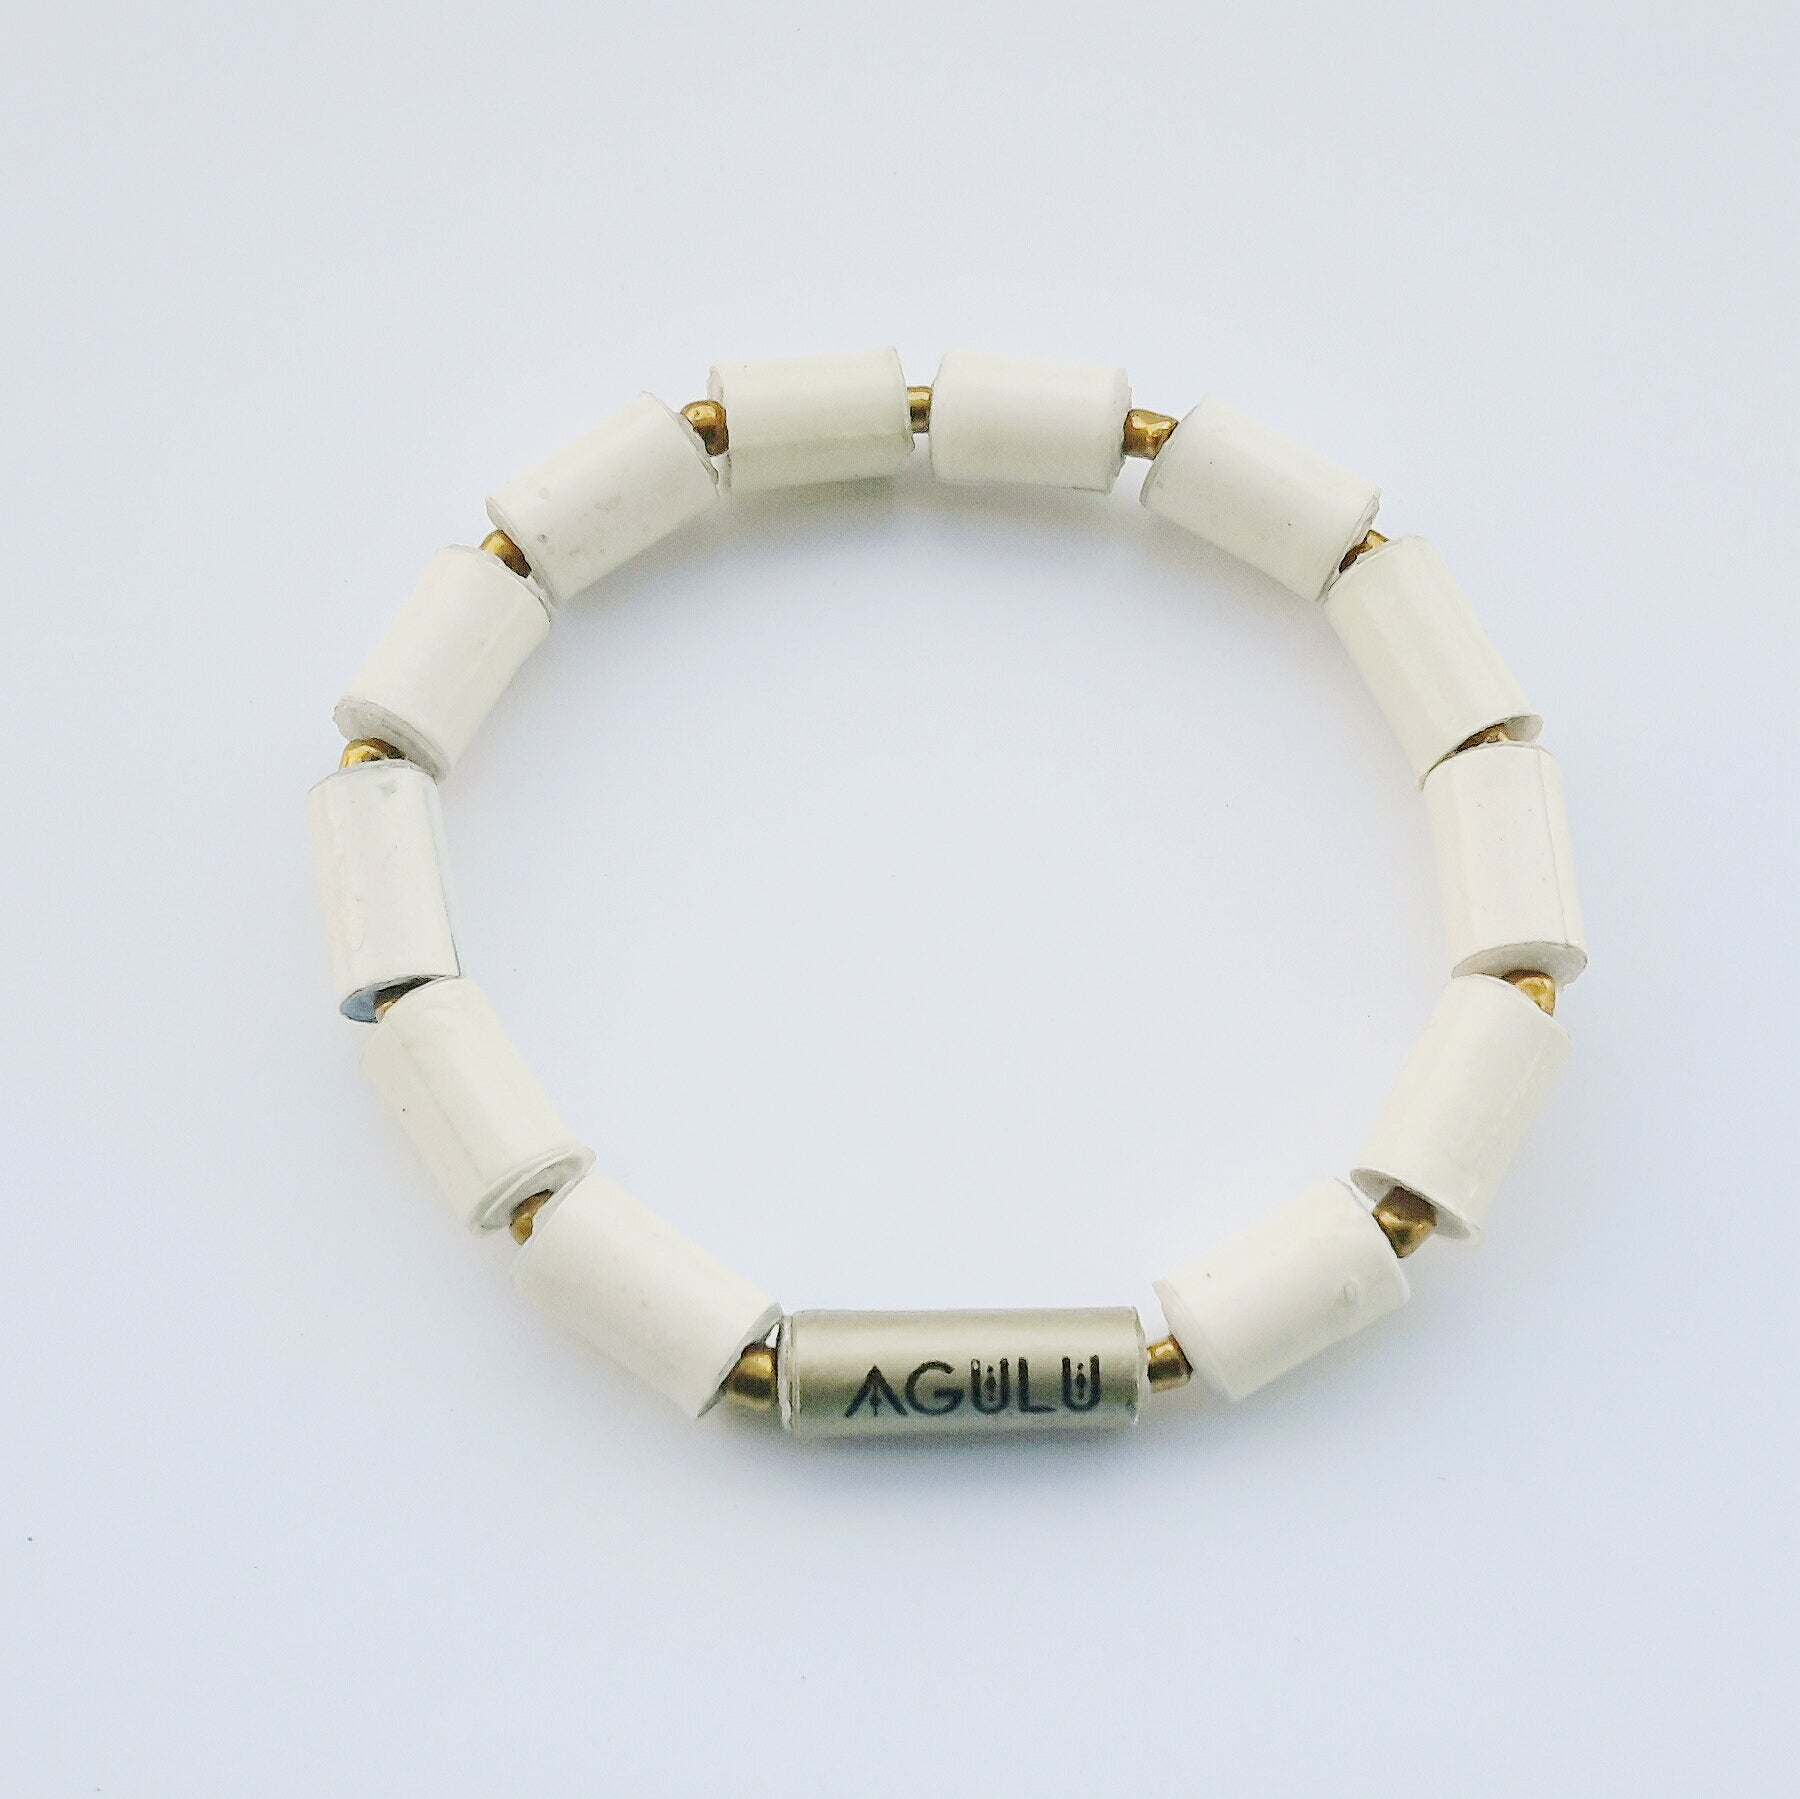 Natural white hand made ethical design paper bead bracelet made out of recycled paper in Uganda by principles of fair trade, ethical and sustainable fashion, empowering women of post war area, by Finnish / Scandinavian brand, Agulu Paper Beads. Eettinen luonnonvalkoinen käsintehty design rannekoru, joka on tehty kierrätyspaperista reilun kaupan periaattein työllistämällä Ugandalaisia nasia.